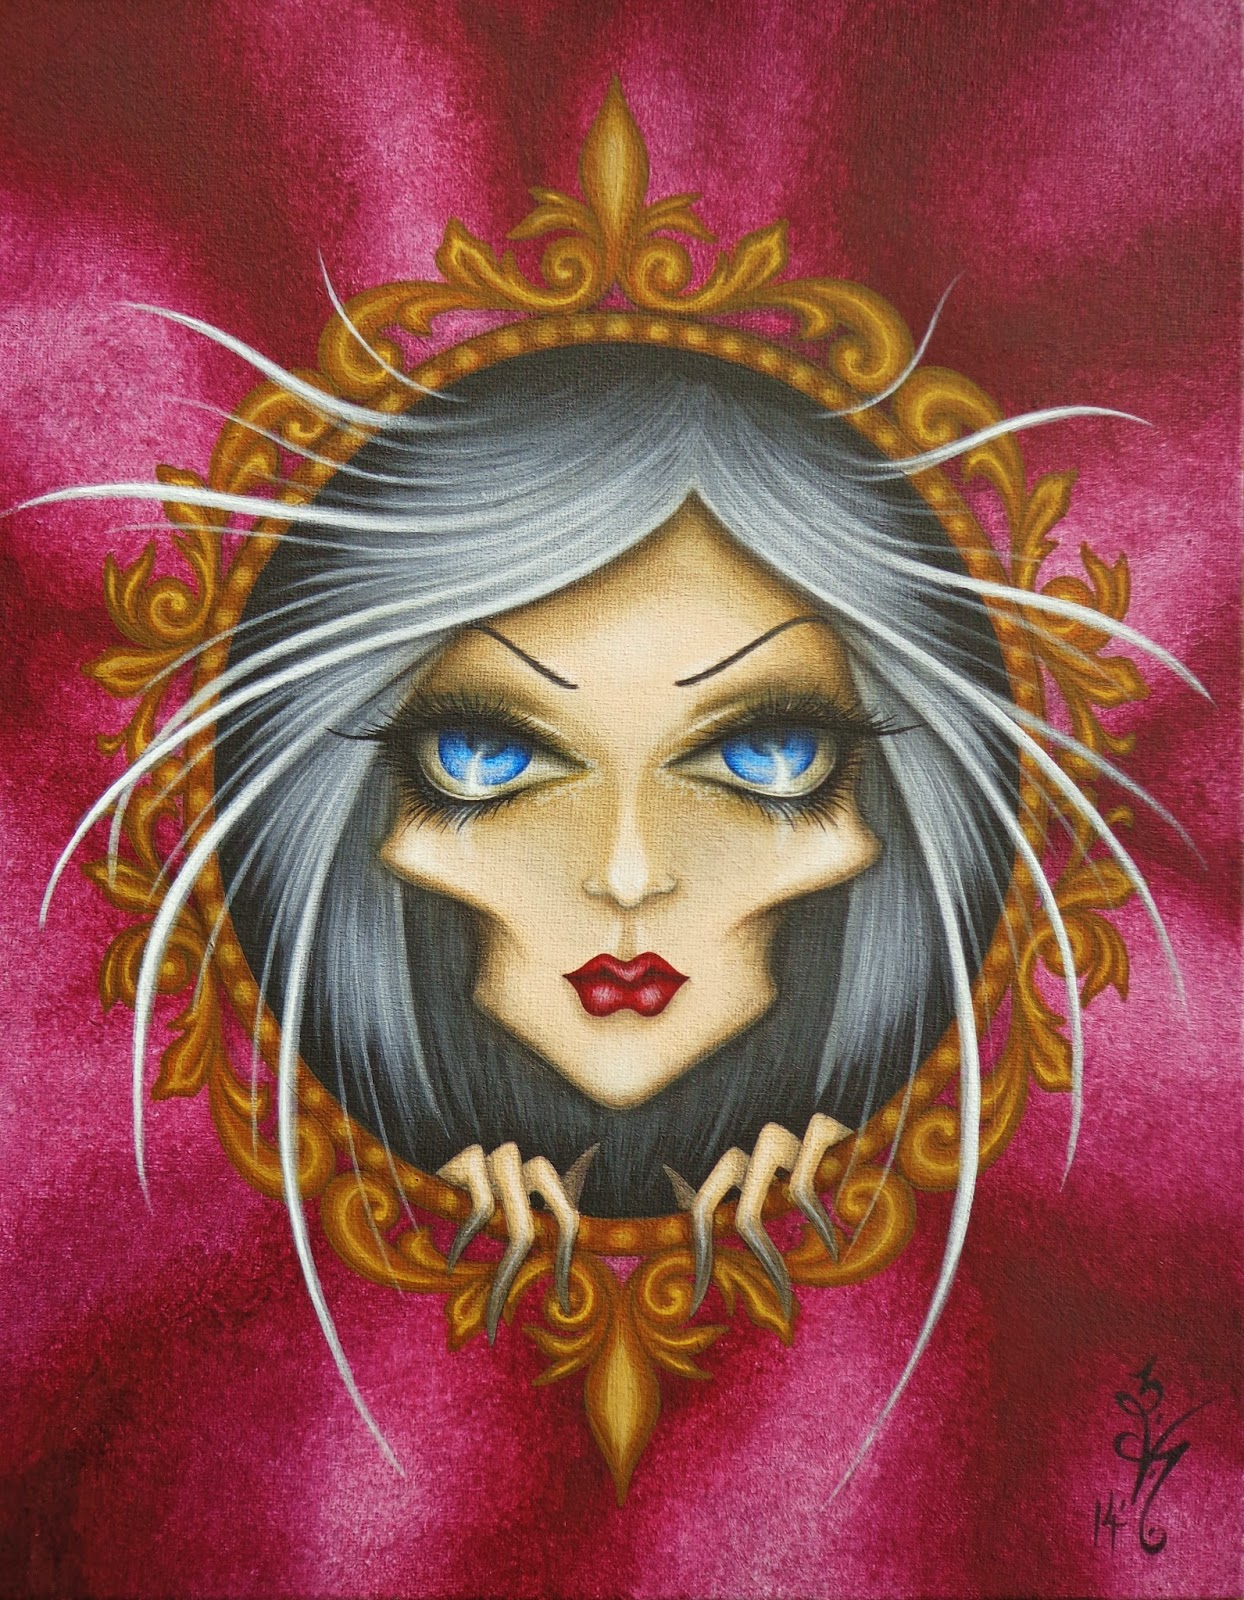 https://www.etsy.com/listing/188701845/original-fantasy-lowbrow-woman-girl-face?ref=shop_home_active_1